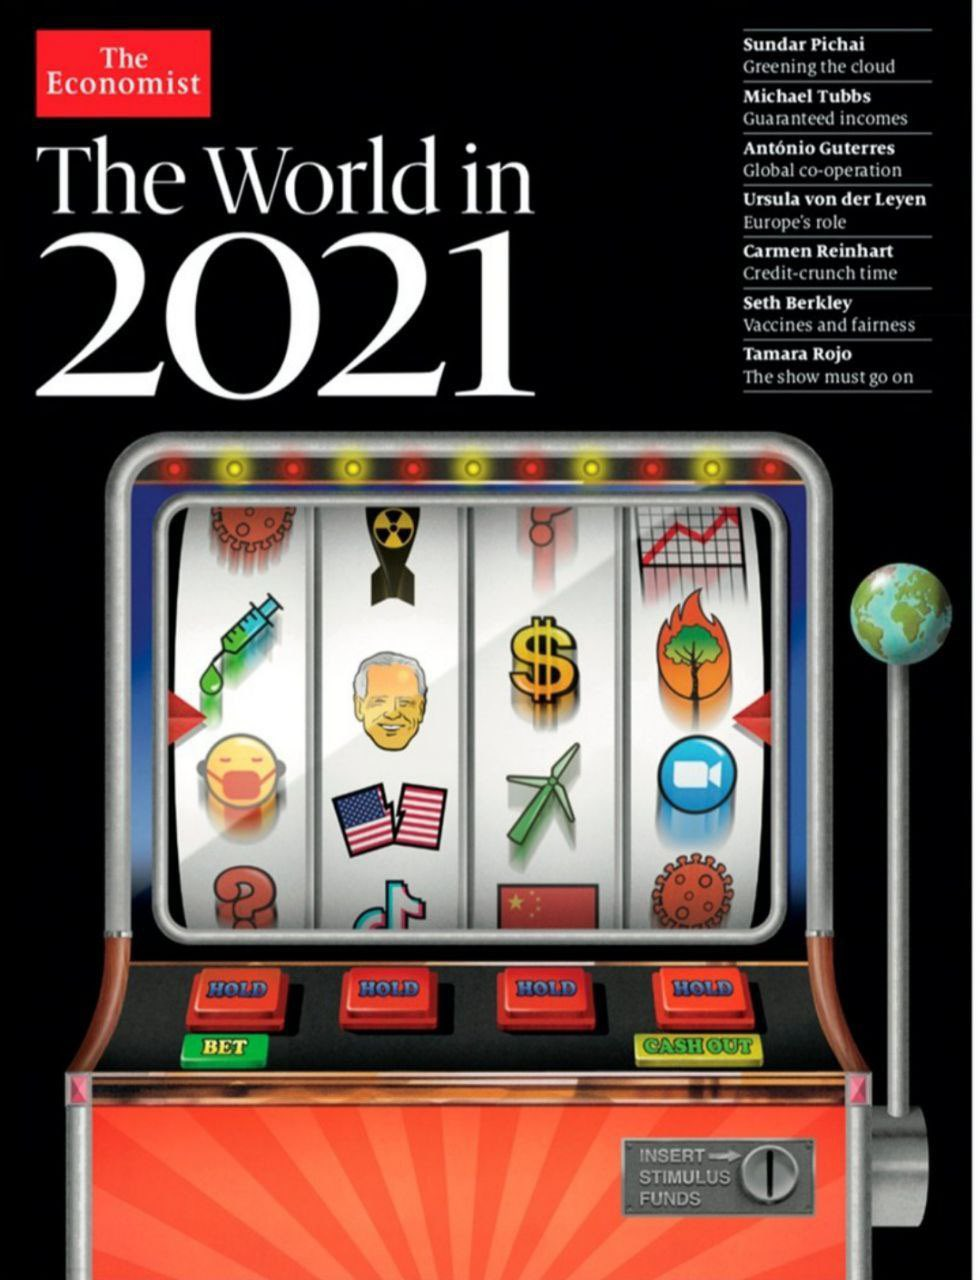 What The Economist predicted for 2021 and for what purpose 100